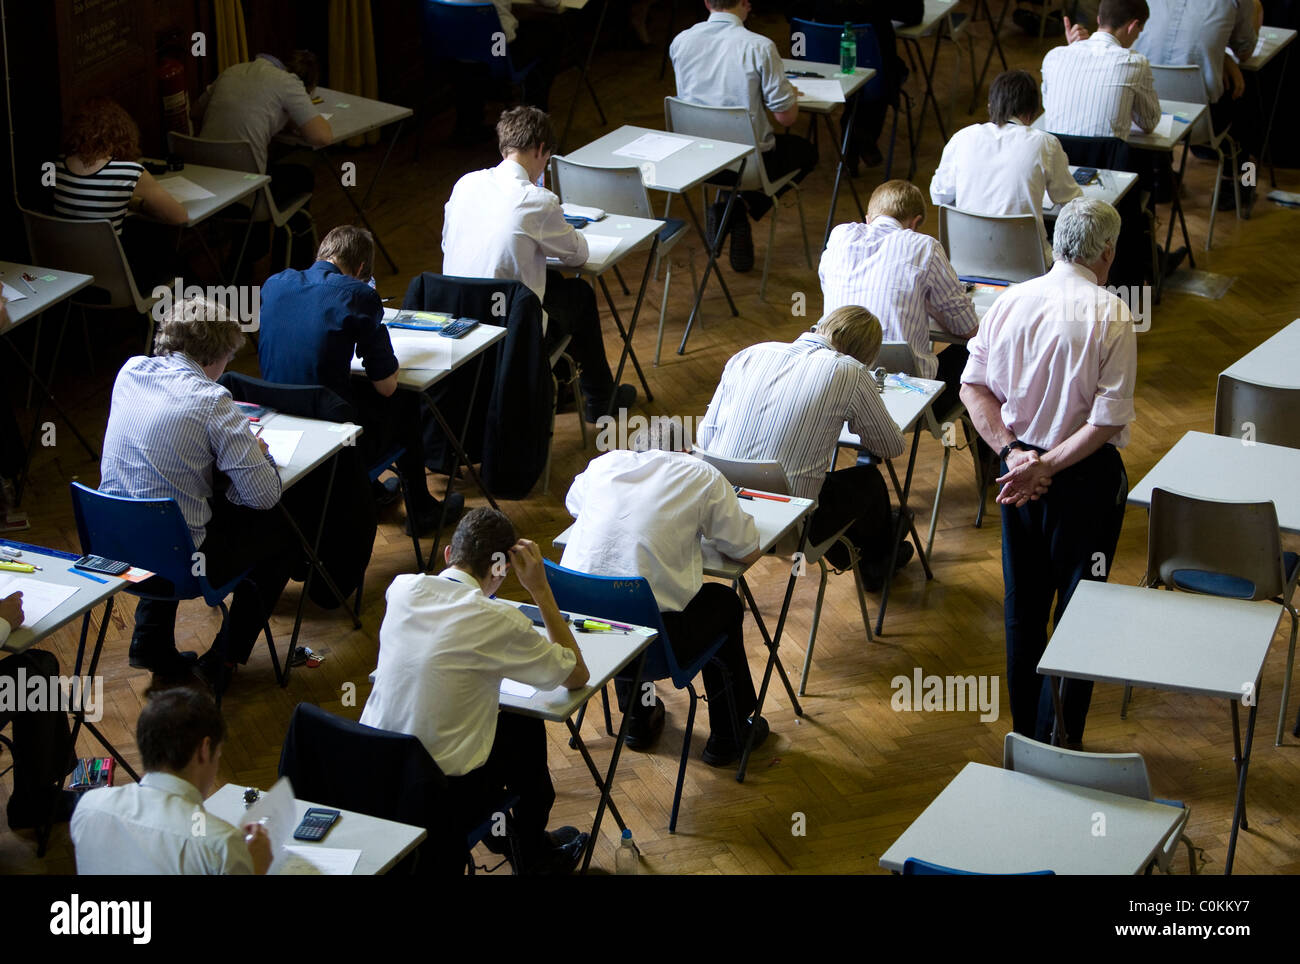 school essay examination hall A test or examination  france require all their secondary school students to take a standardized test on individual  may be done in a large hall,.